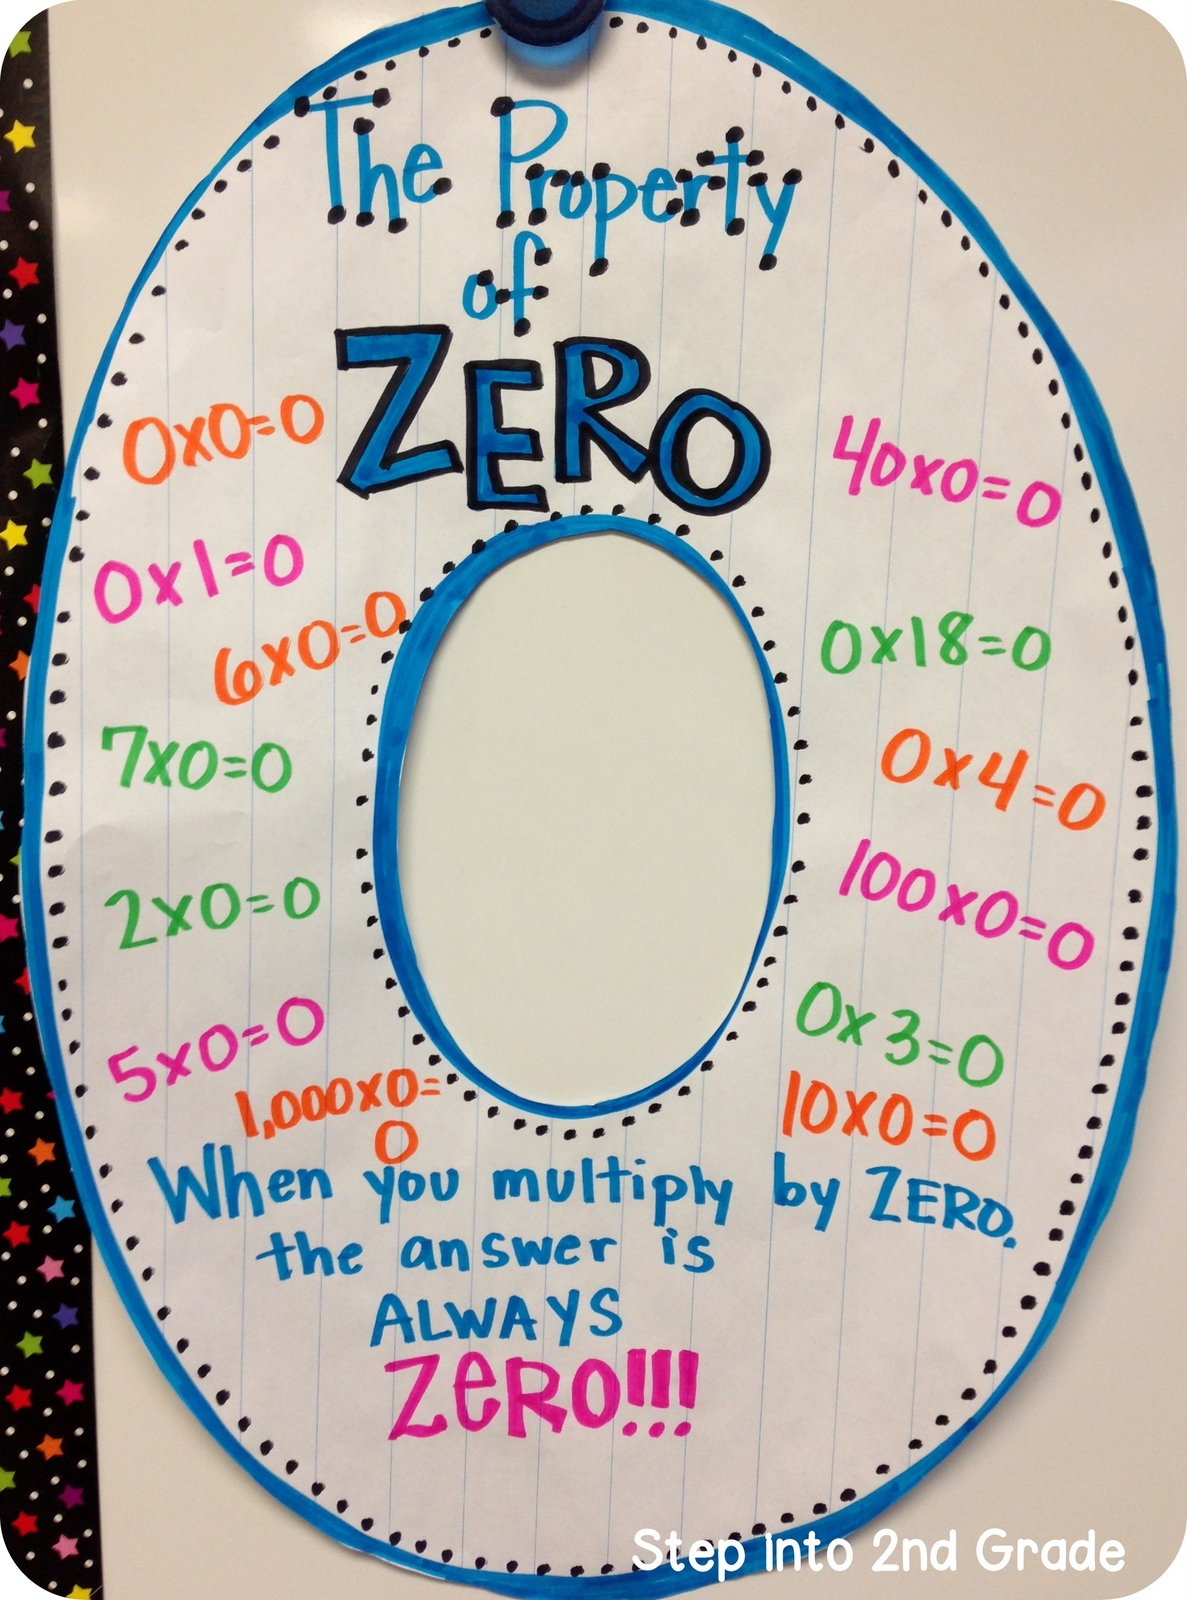 71 Addition Facts Table With Zero With Zero Facts